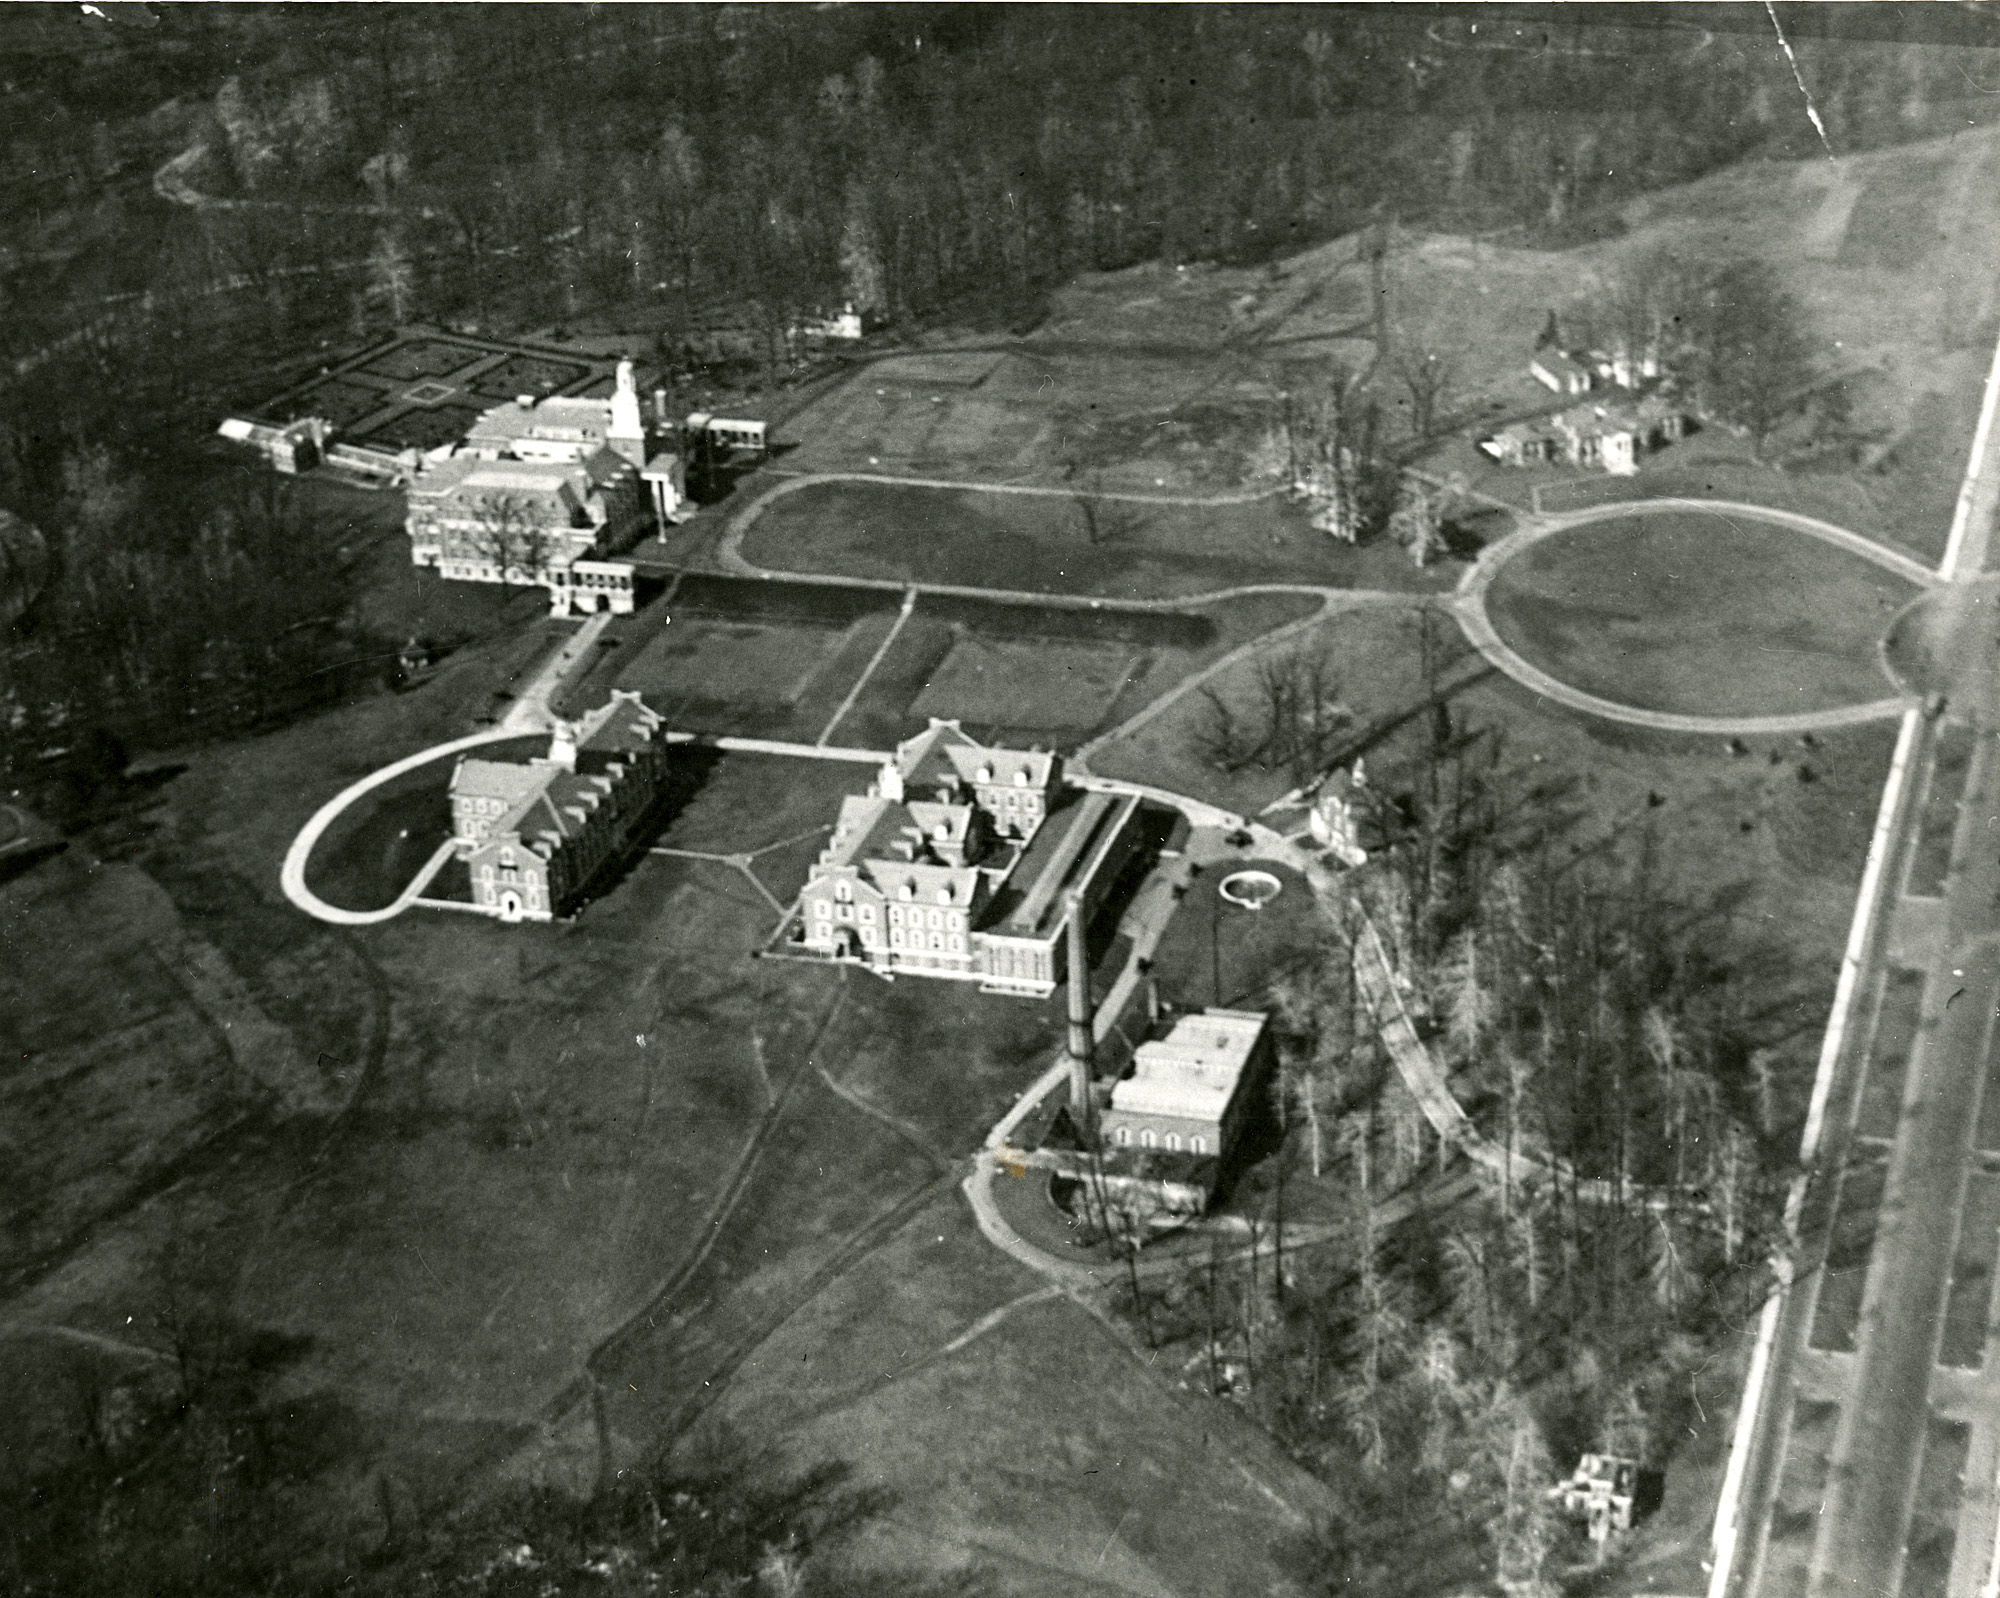 Aerial view of Homewood campus